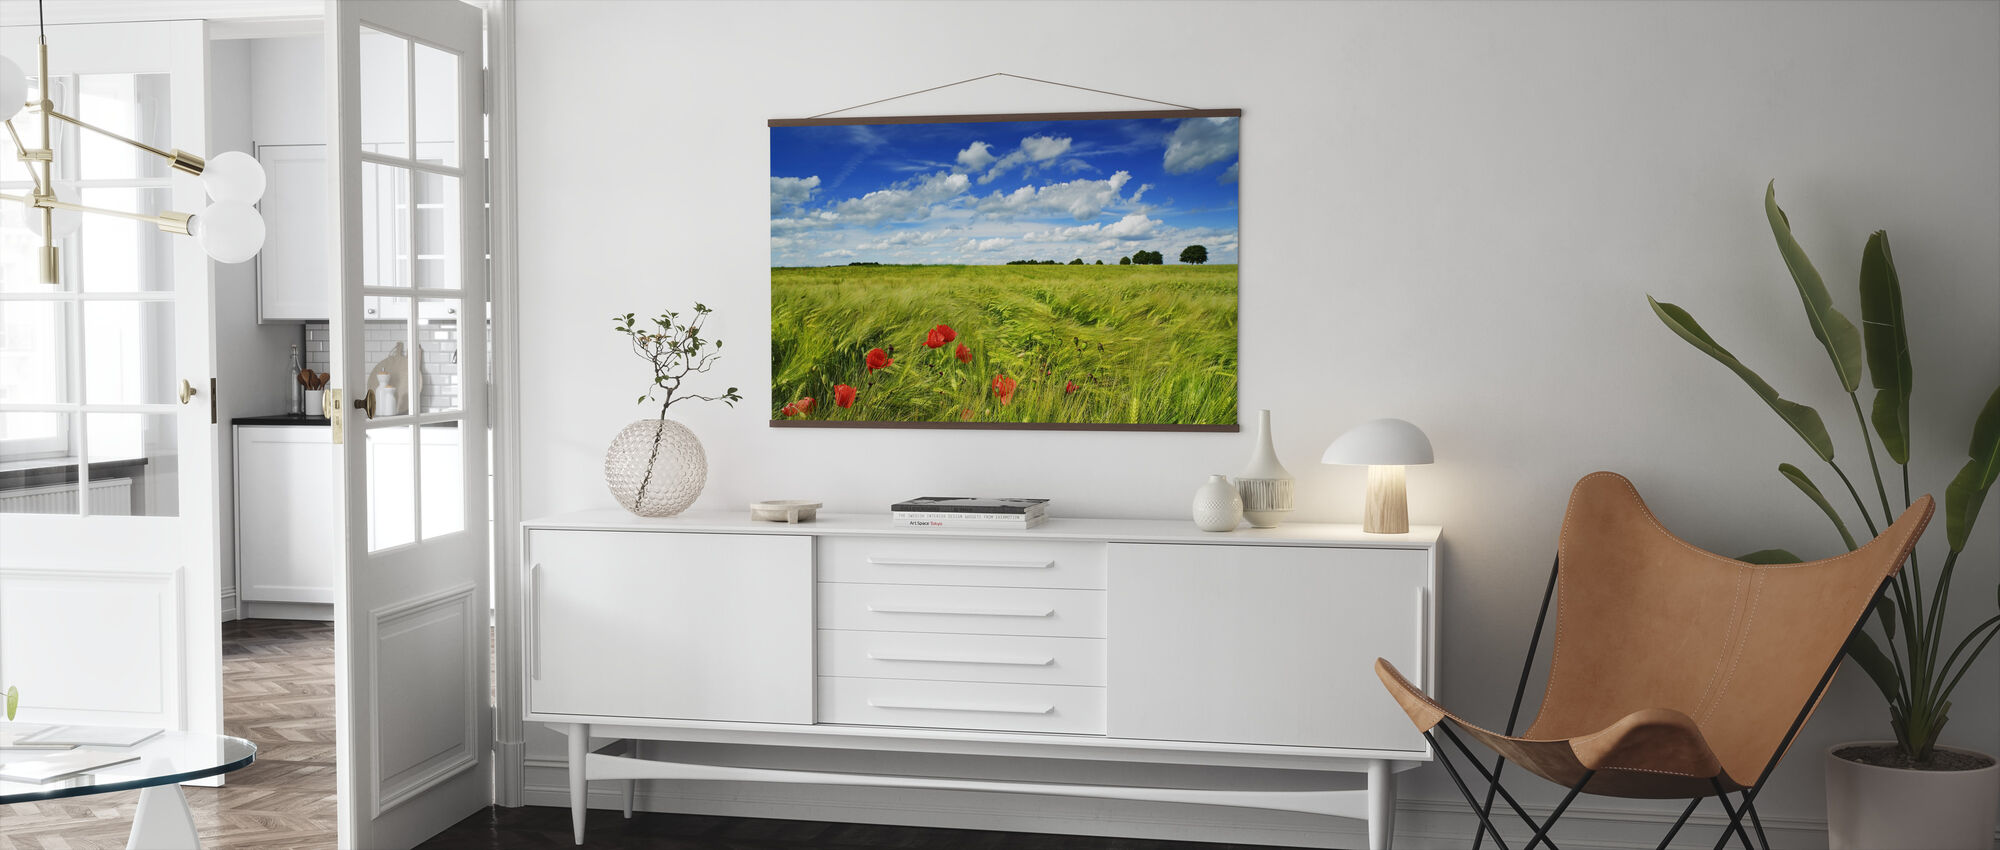 Barley Field with Corn Poppies - Poster - Living Room